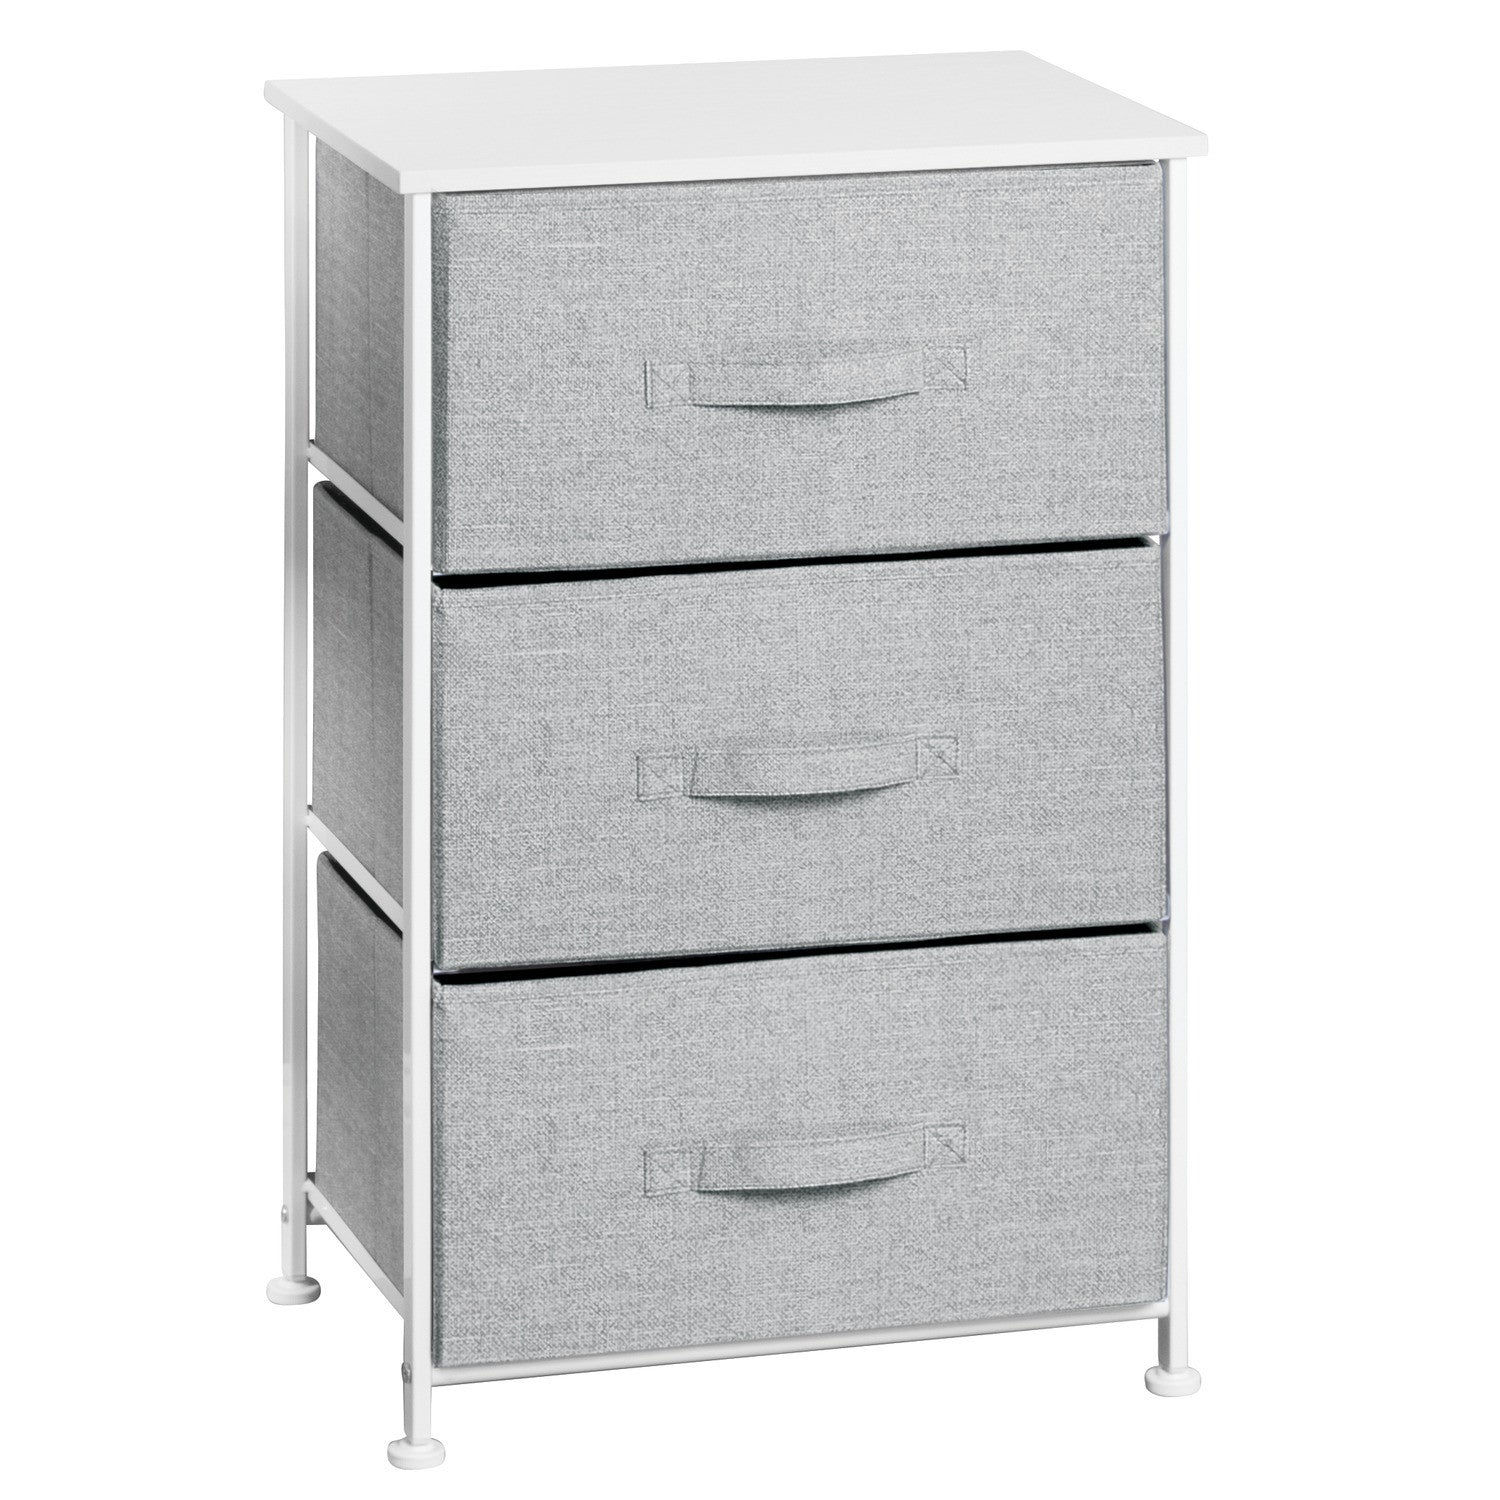 3 Drawer Storage Unit - Linen